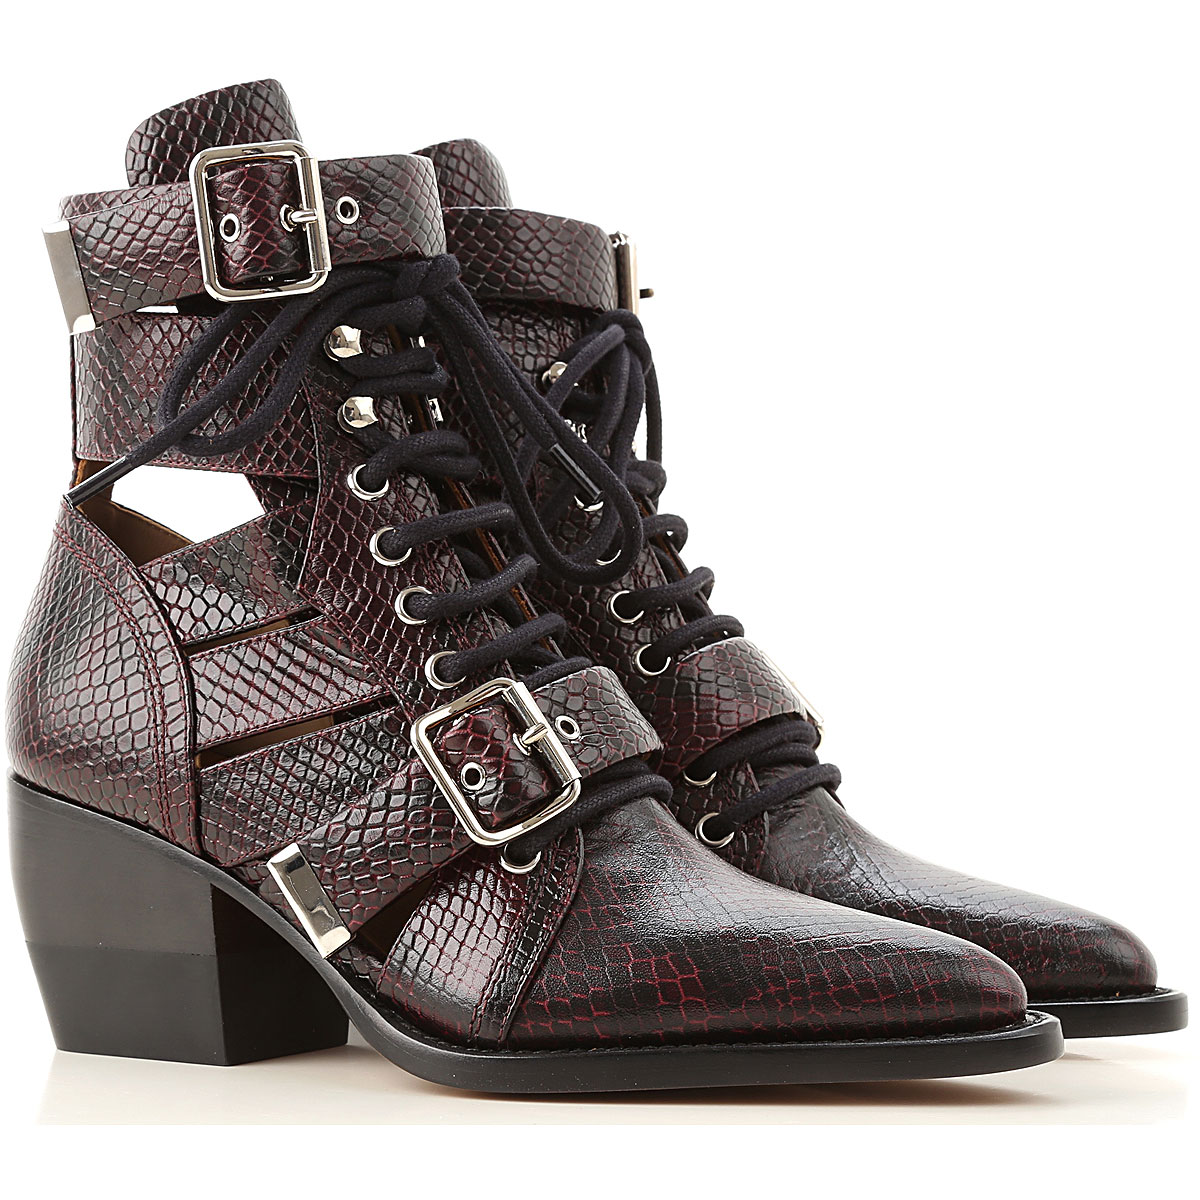 Chloe Boots for Women Booties On Sale in Outlet SE - GOOFASH